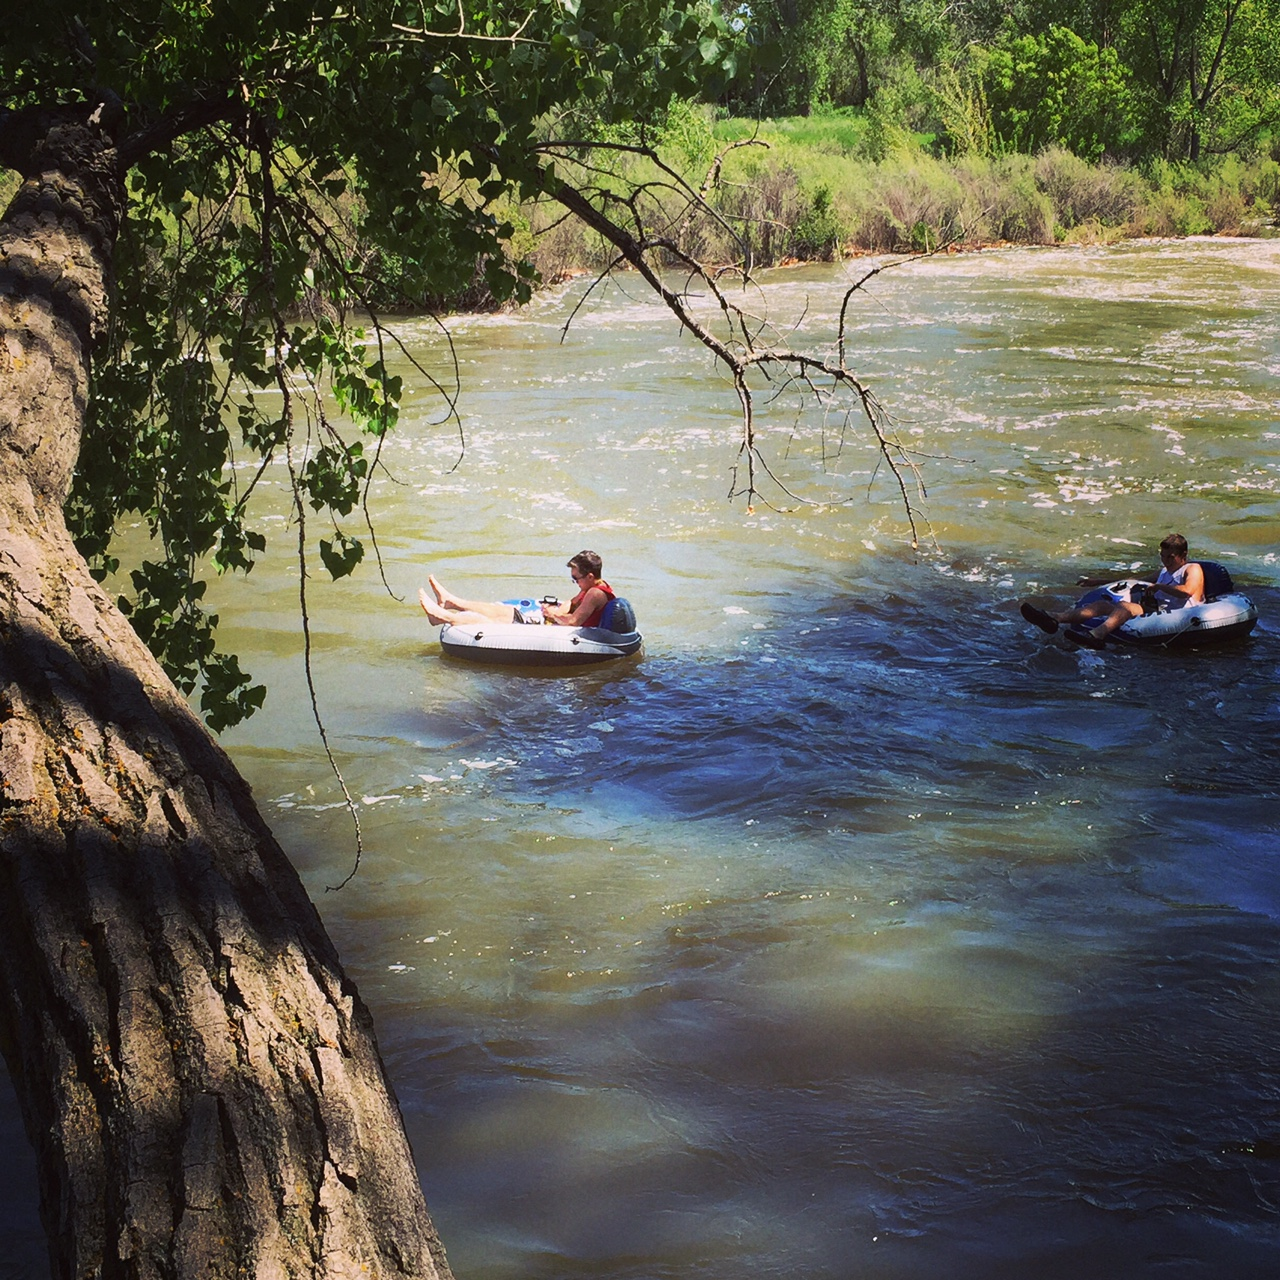 The South Platte is a recreation oasis on hot summer days along the Front Range.